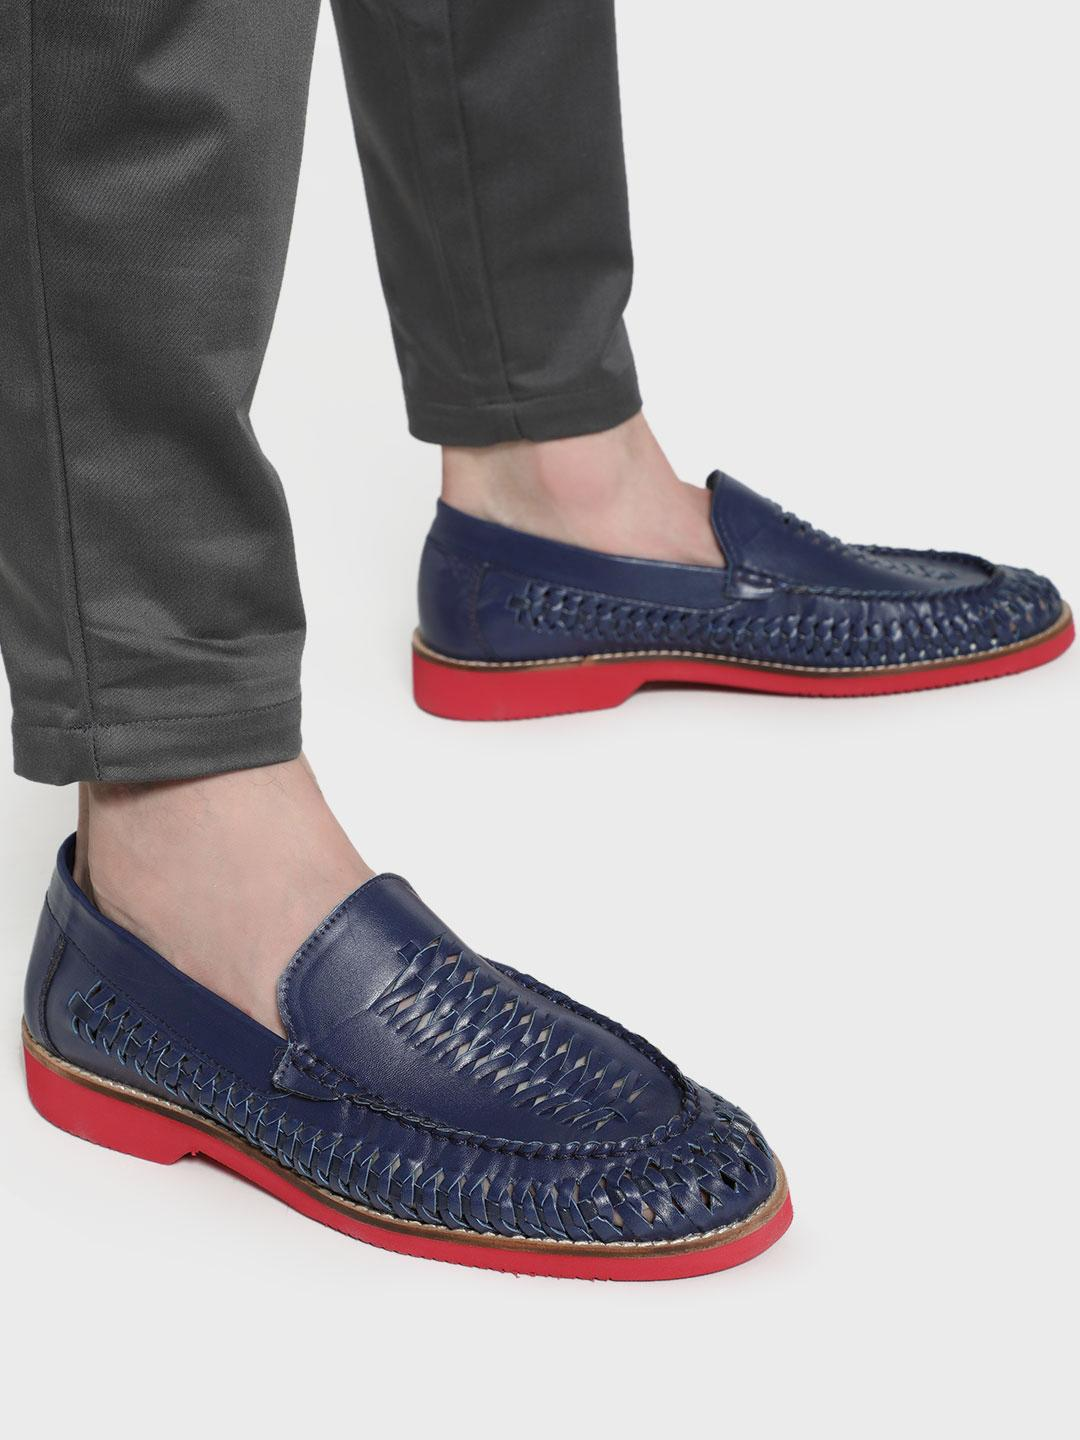 Bolt Of The Good Stuff Blue Basket Weave Contrast Sole Loafers 1